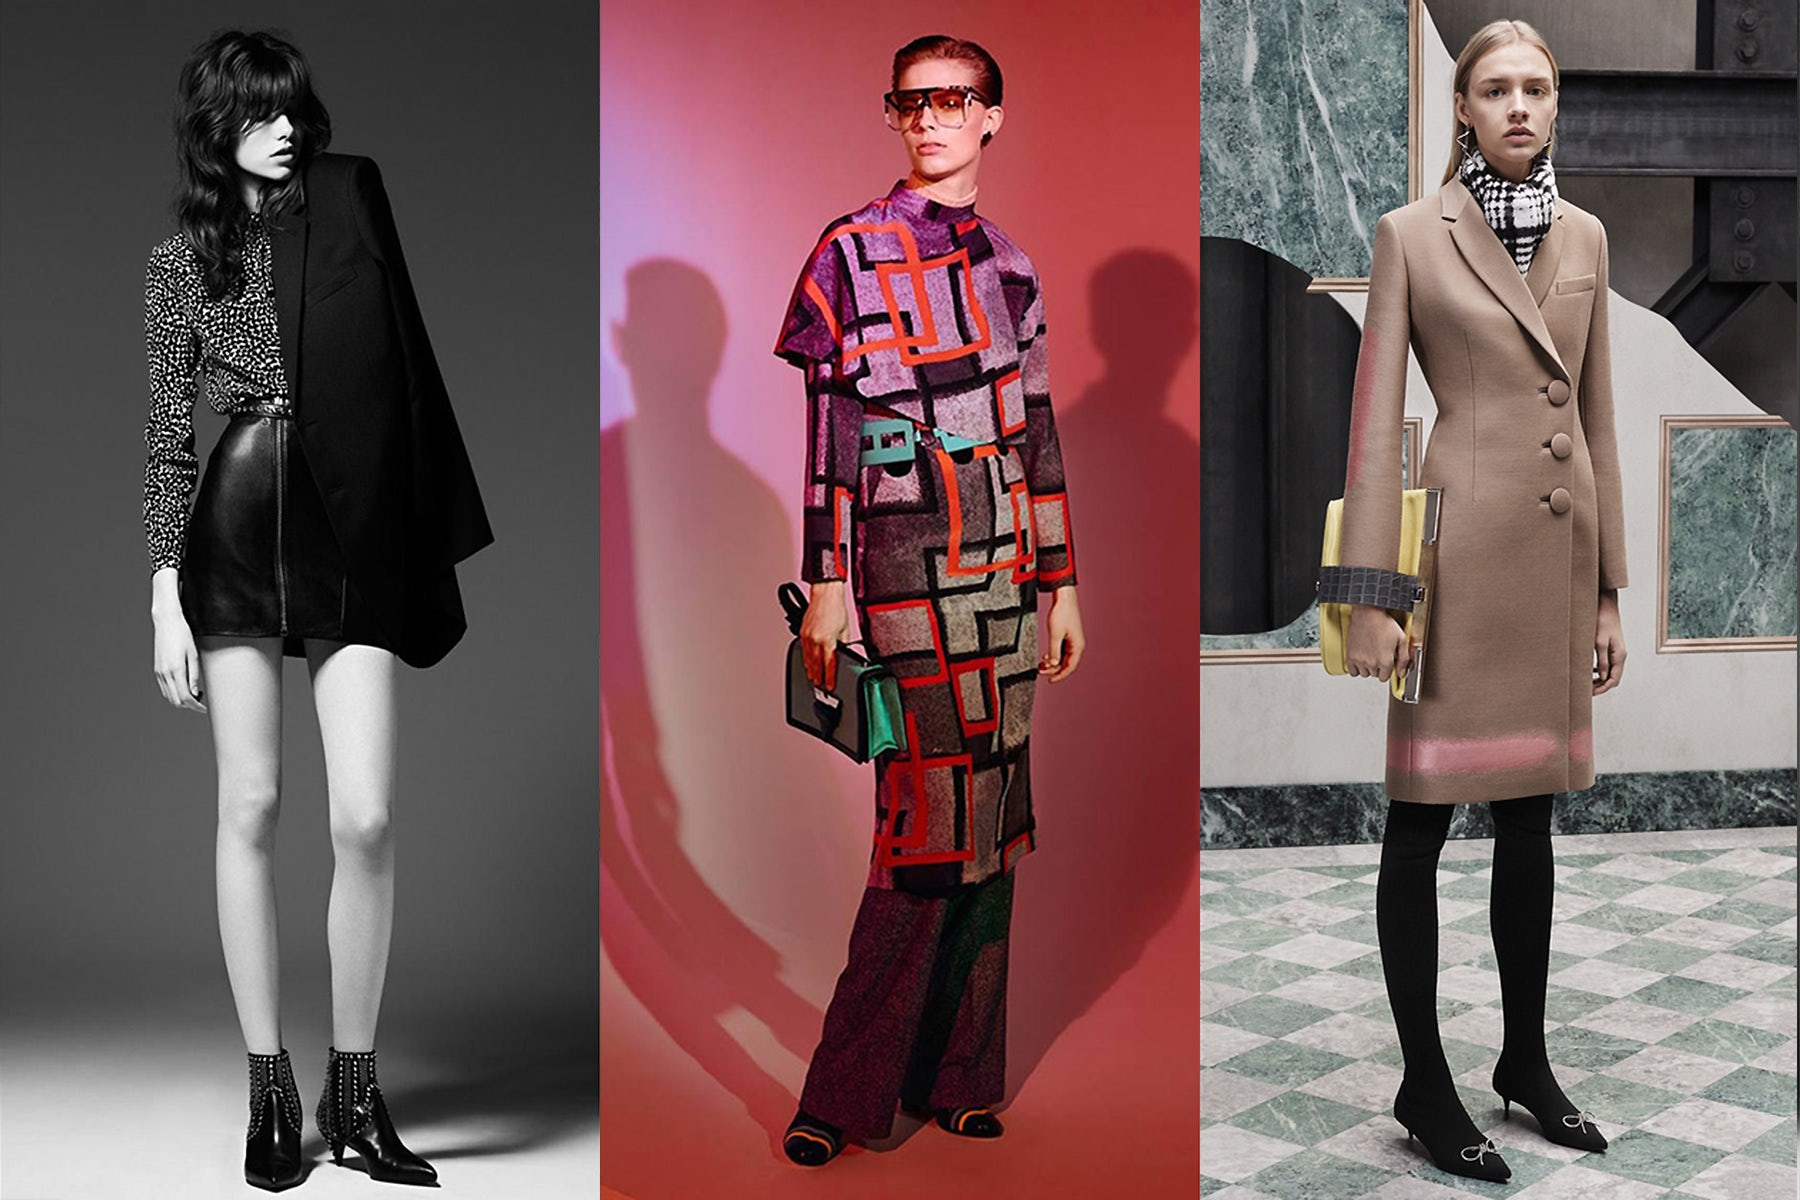 Saint Laurent pre-fall 2015;  Loewe autumn/winter 2015; Balenciaga pre-fall 2015 | Source: Saint Laurent; Loewe; Balenciaga